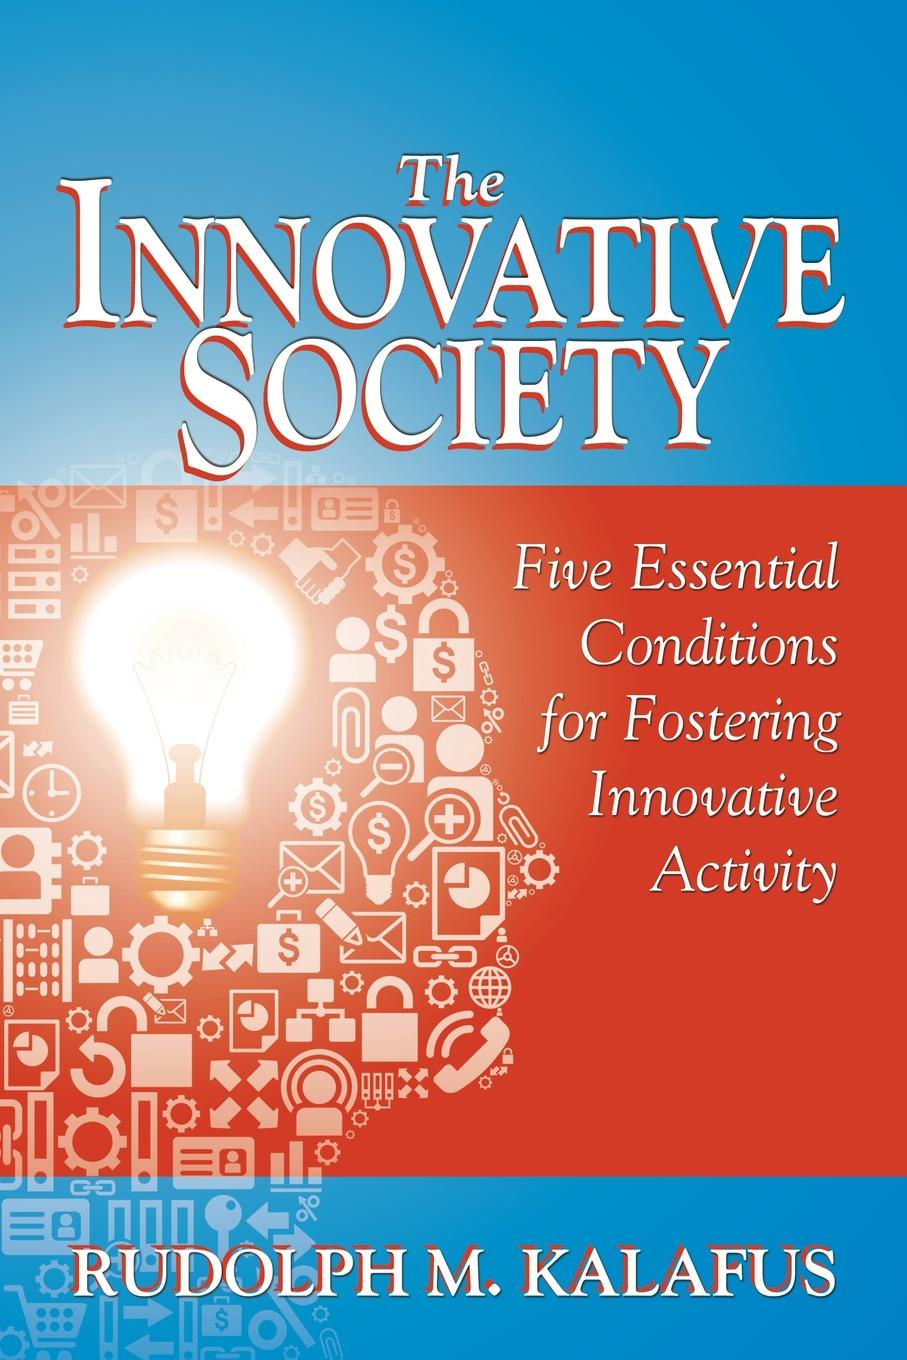 Rudolph Kalafus The Innovative Society. Five Essential Conditions for Fostering Activity